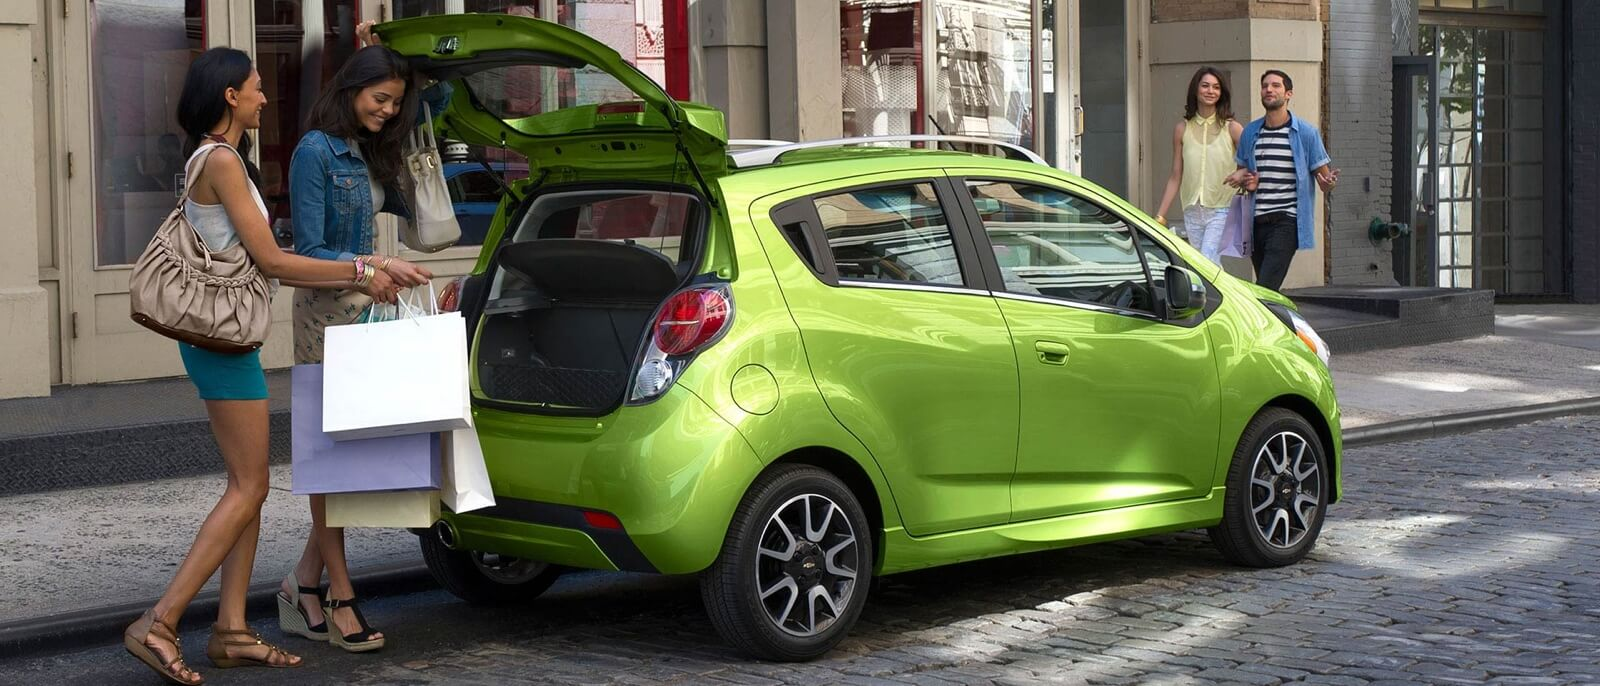 2015 Chevrolet Spark rear view